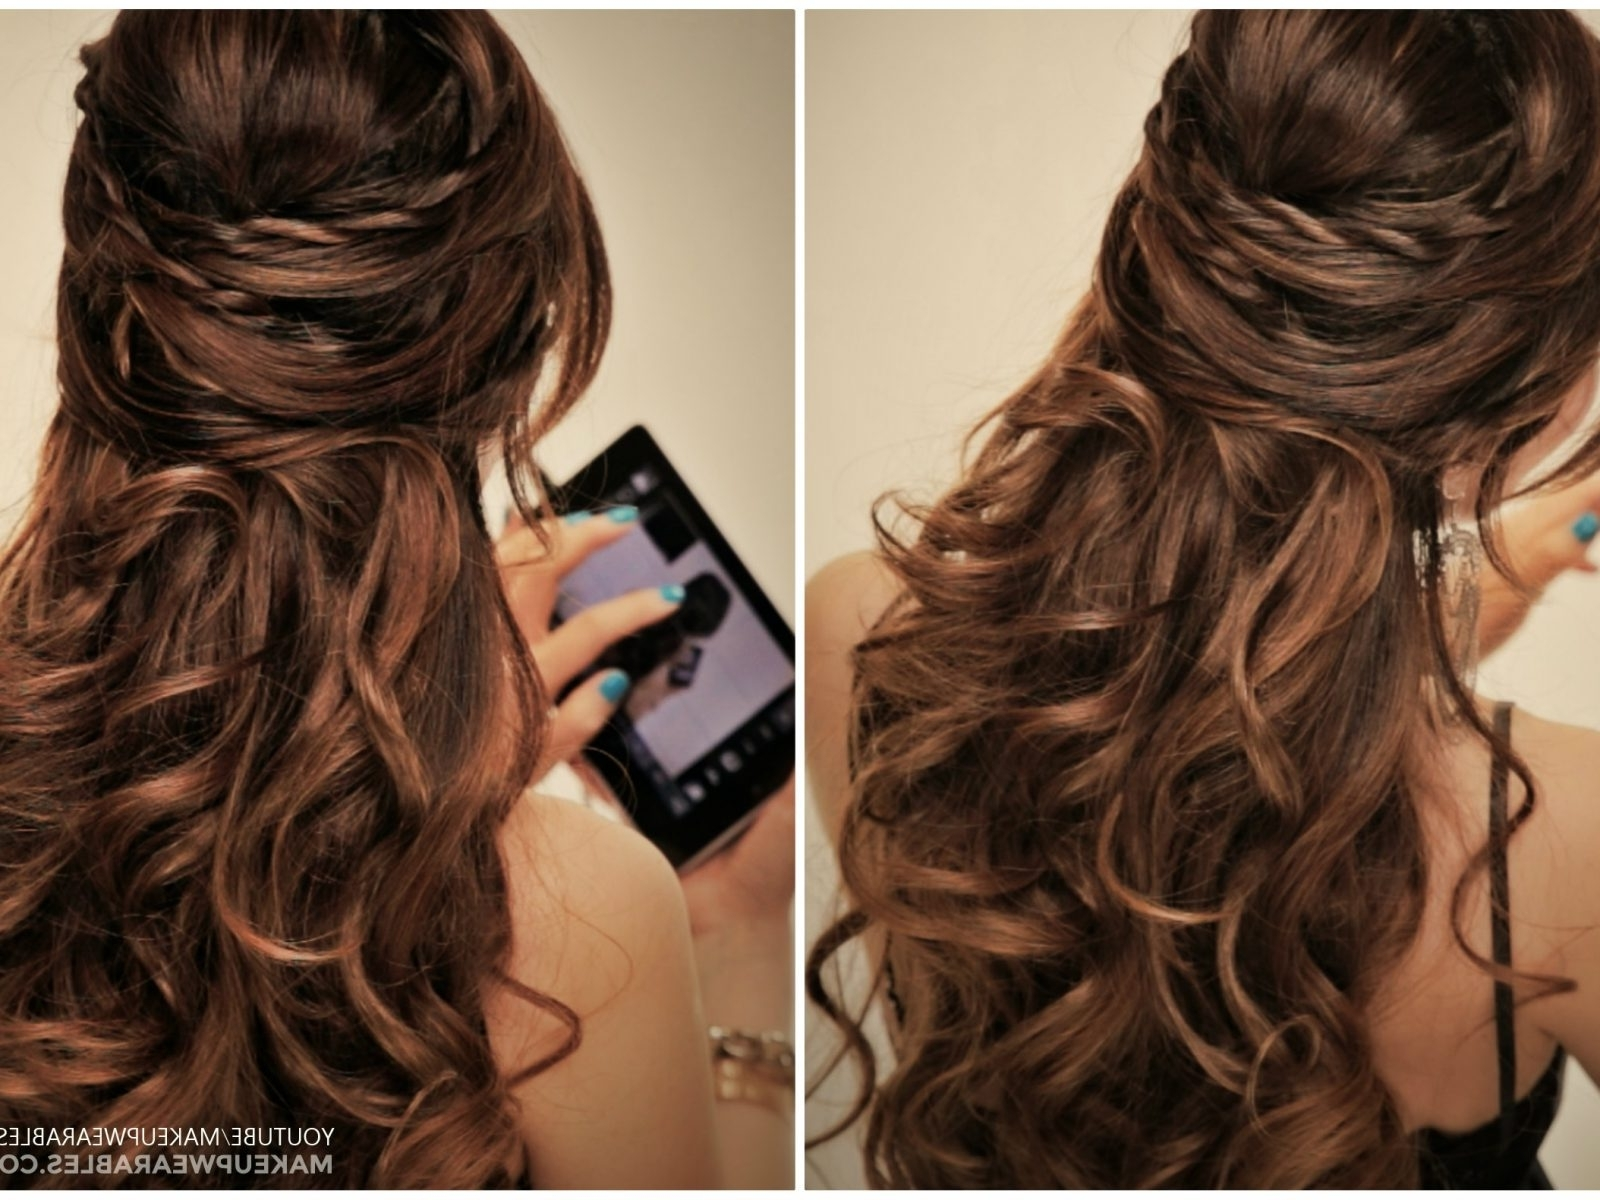 Easy Half Updo Hairstyles For Long Hair Cute Twisted Flip Up Down Pertaining To Long Hair Half Updo Hairstyles (View 6 of 15)